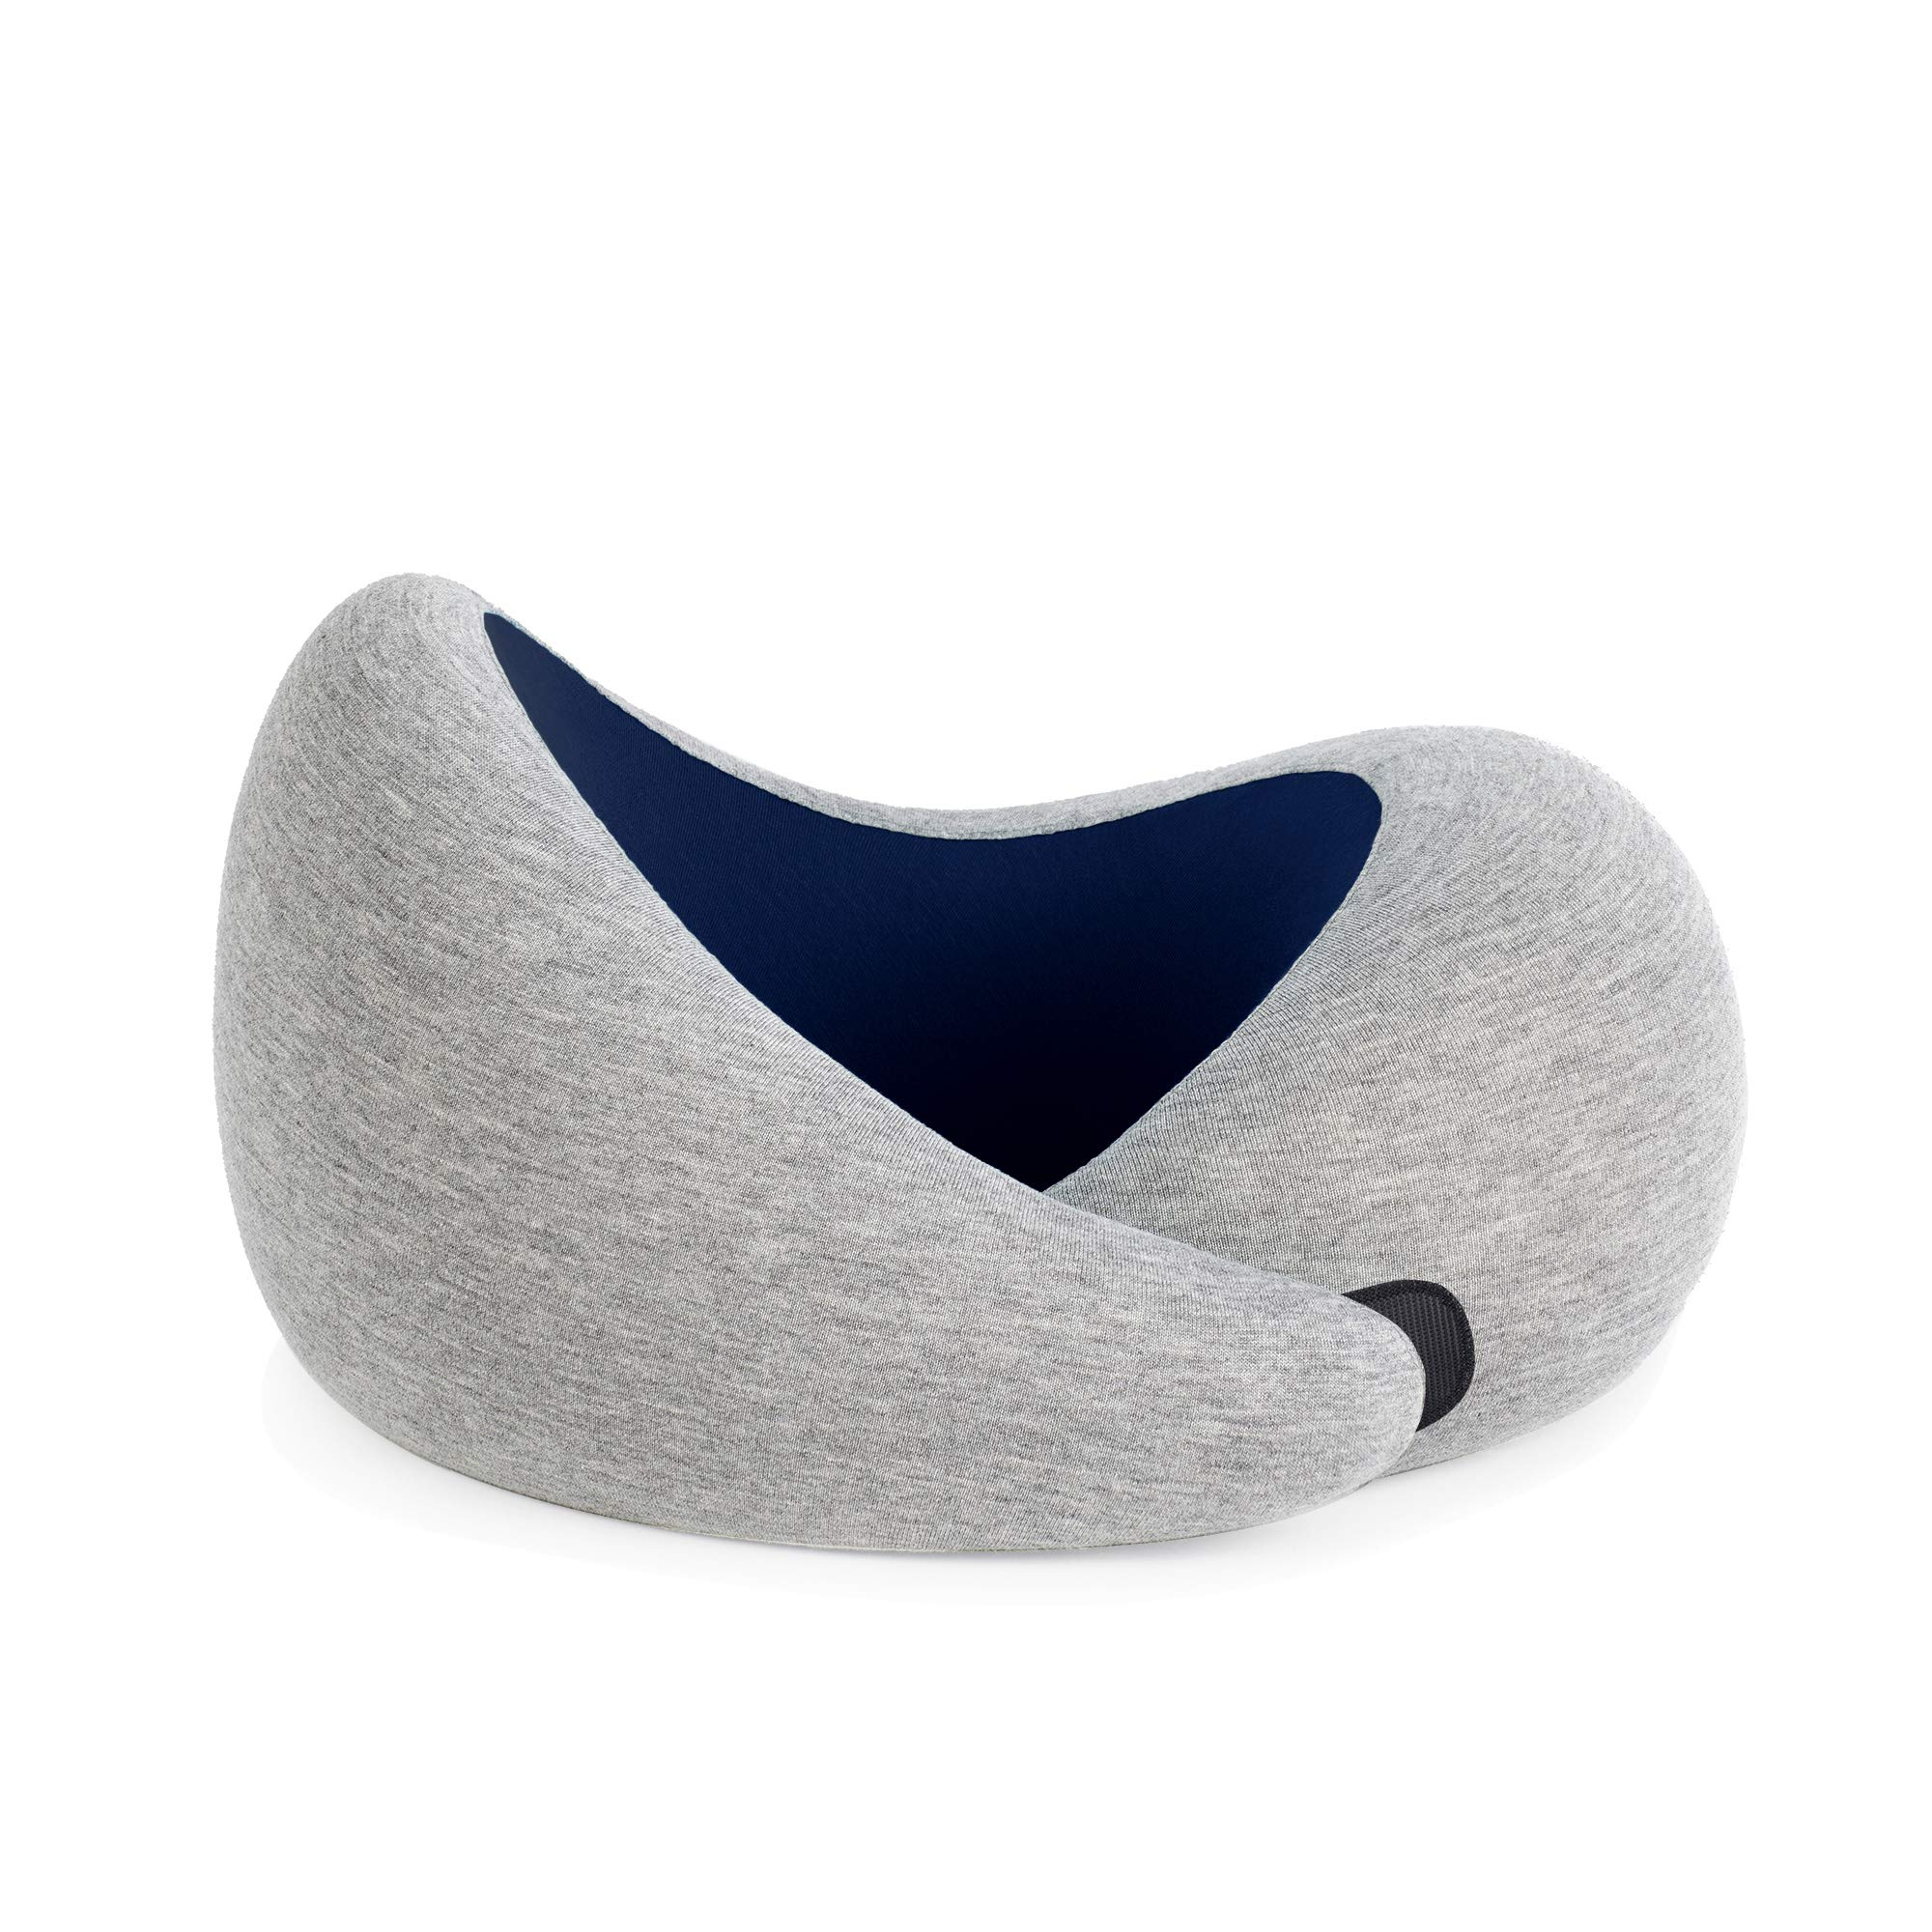 OSTRICHPILLOW GO Travel Pillow for Airplane Neck Support - Memory Foam Travel Accessories, Luxury Power Nap Pillow for Flight - Deep Blue by OSTRICH PILLOW